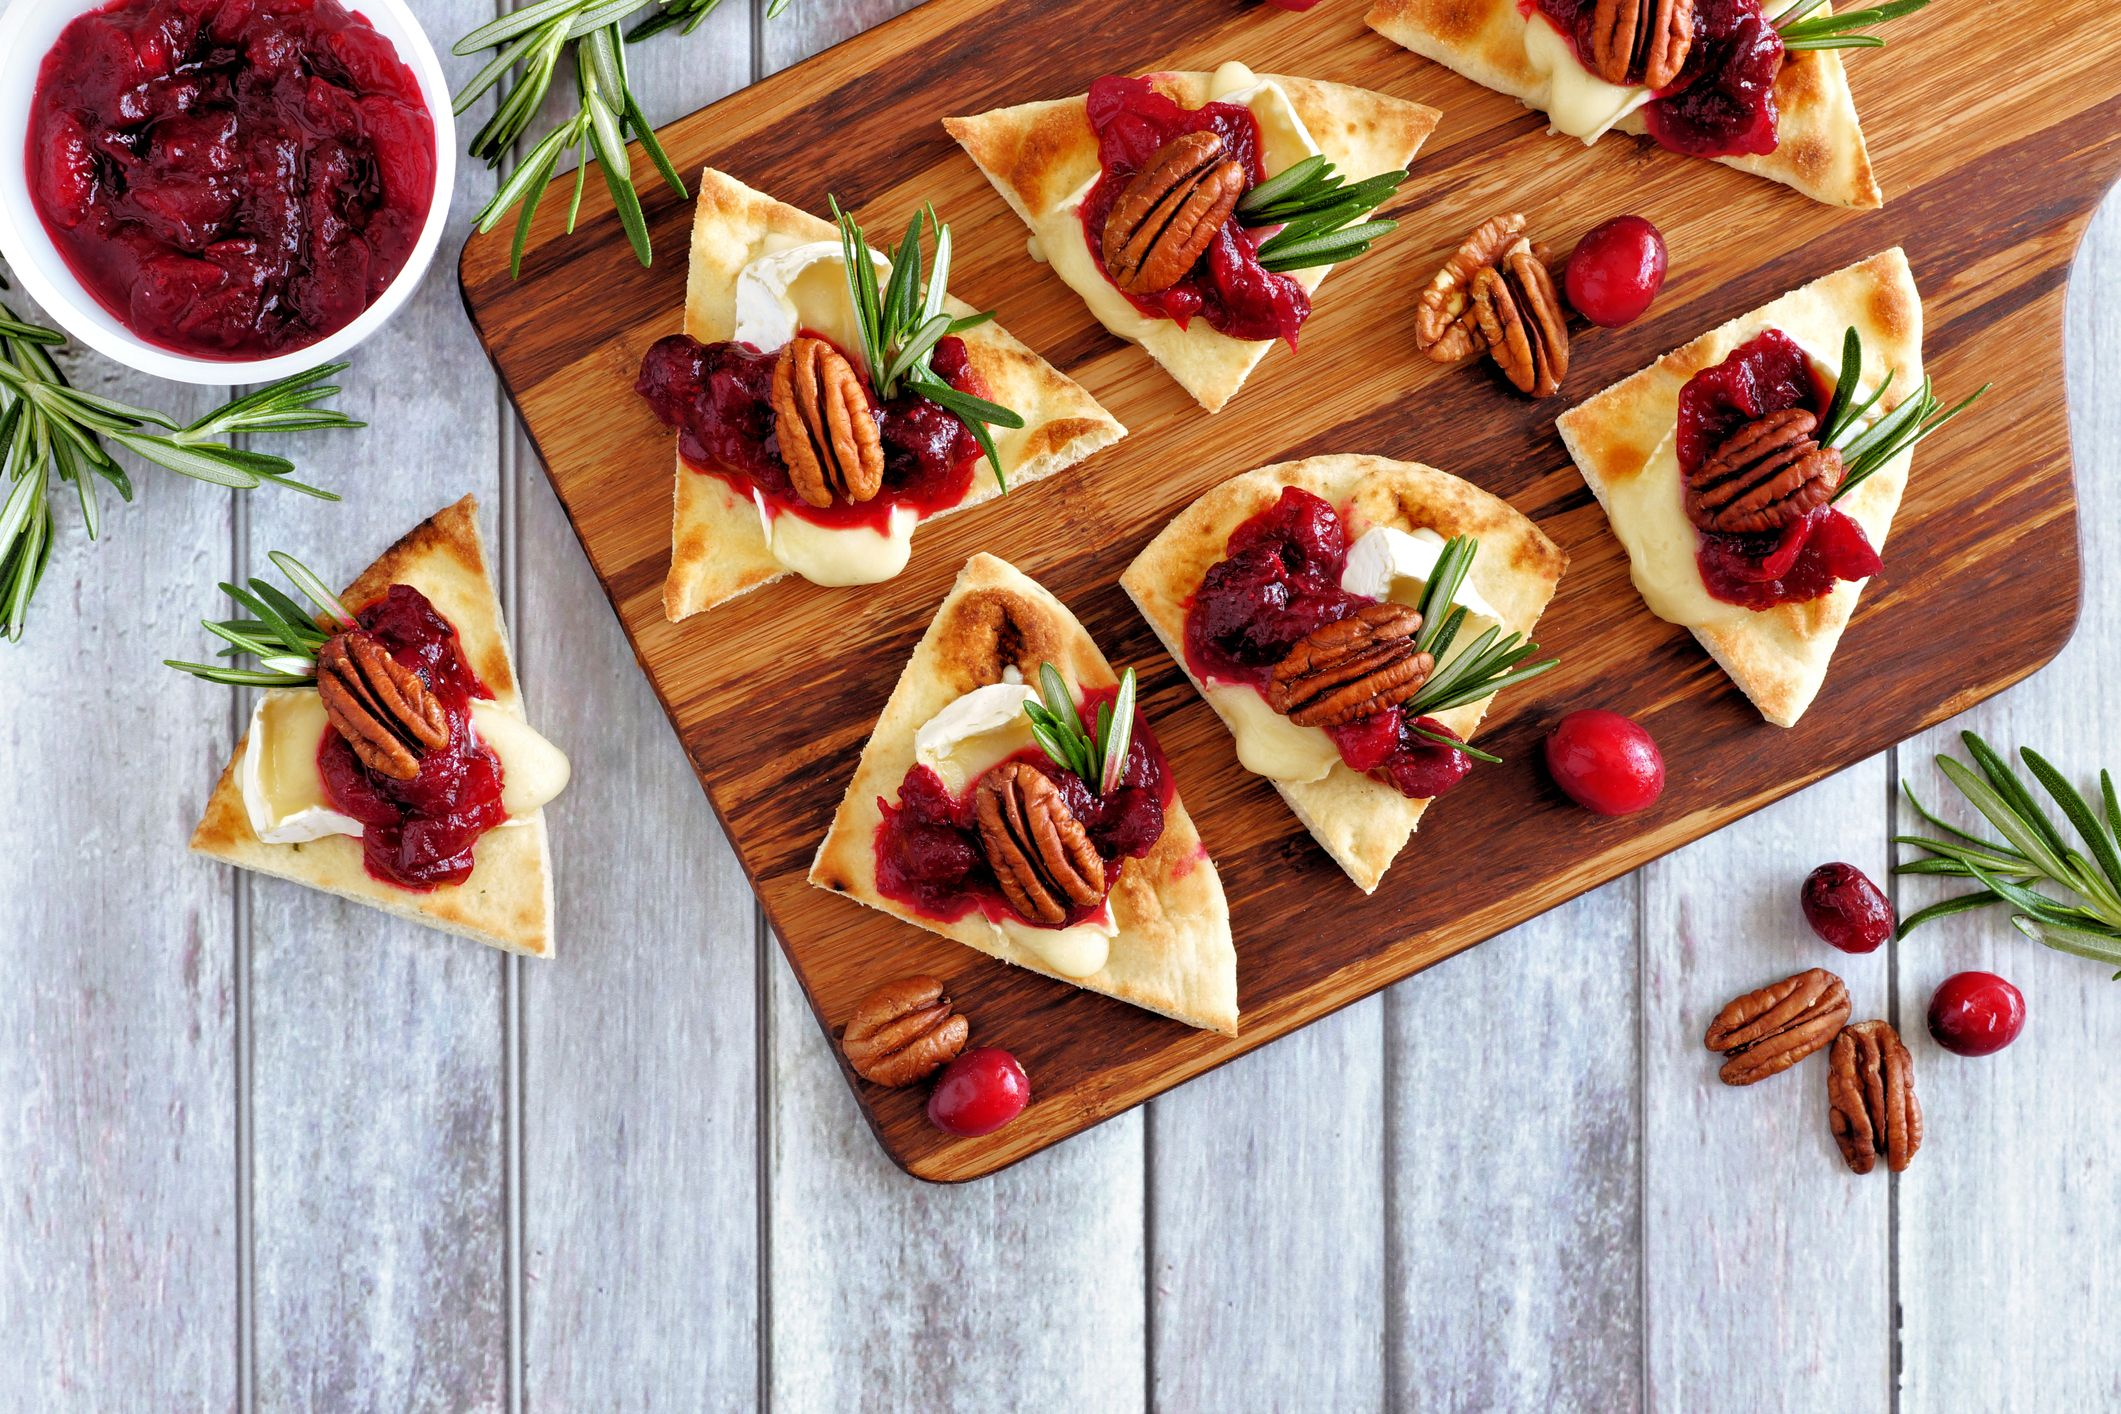 75 Easy Christmas Appetizer Ideas  Best Holiday Appetizer Recipes